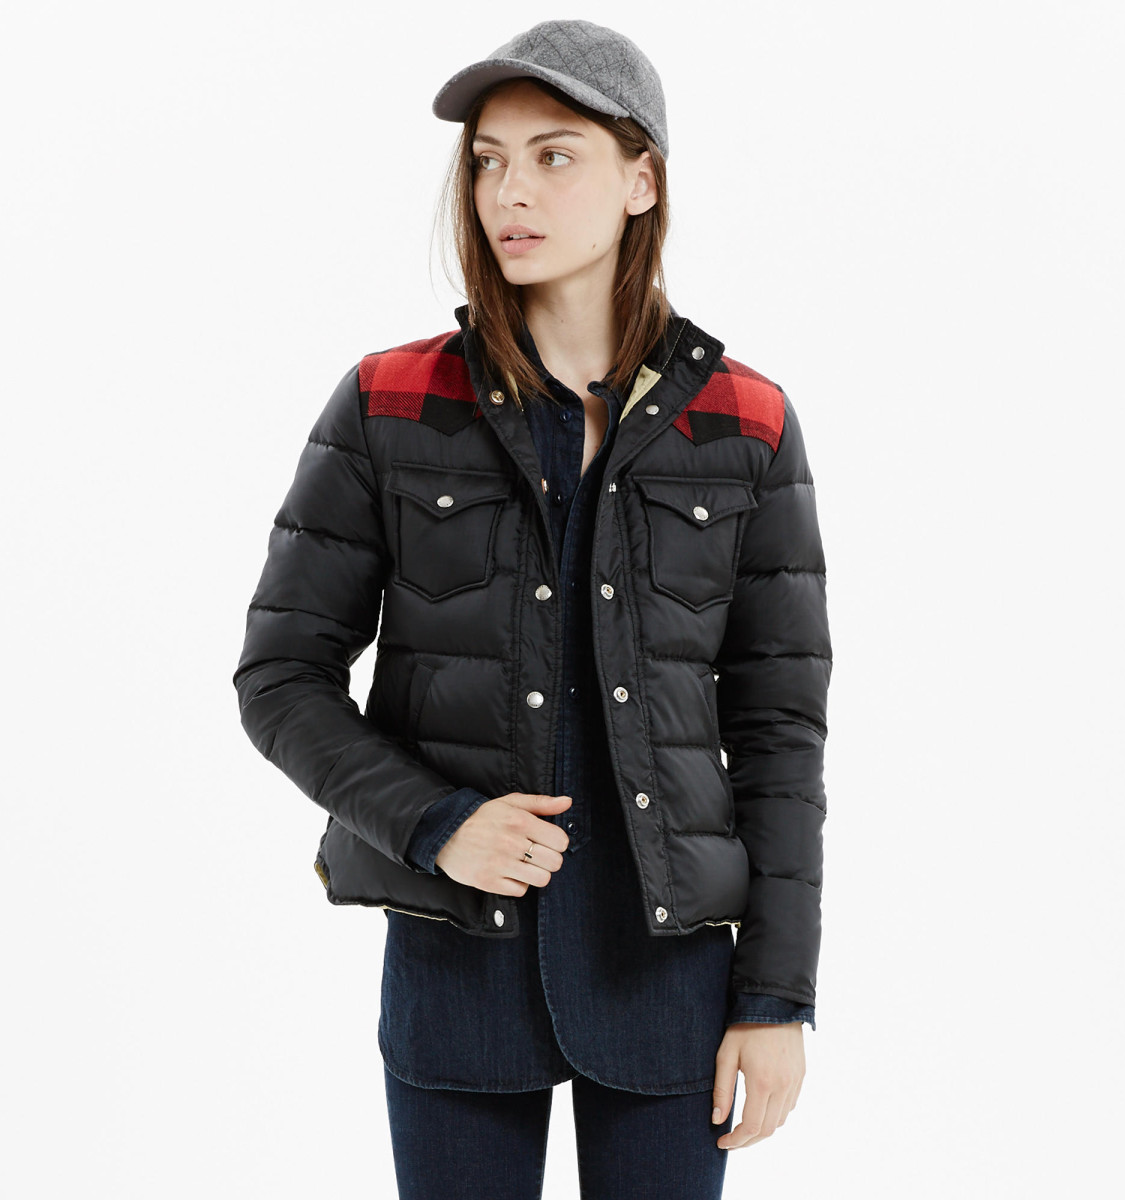 puffer jackets photo: madewell VLVNZAA